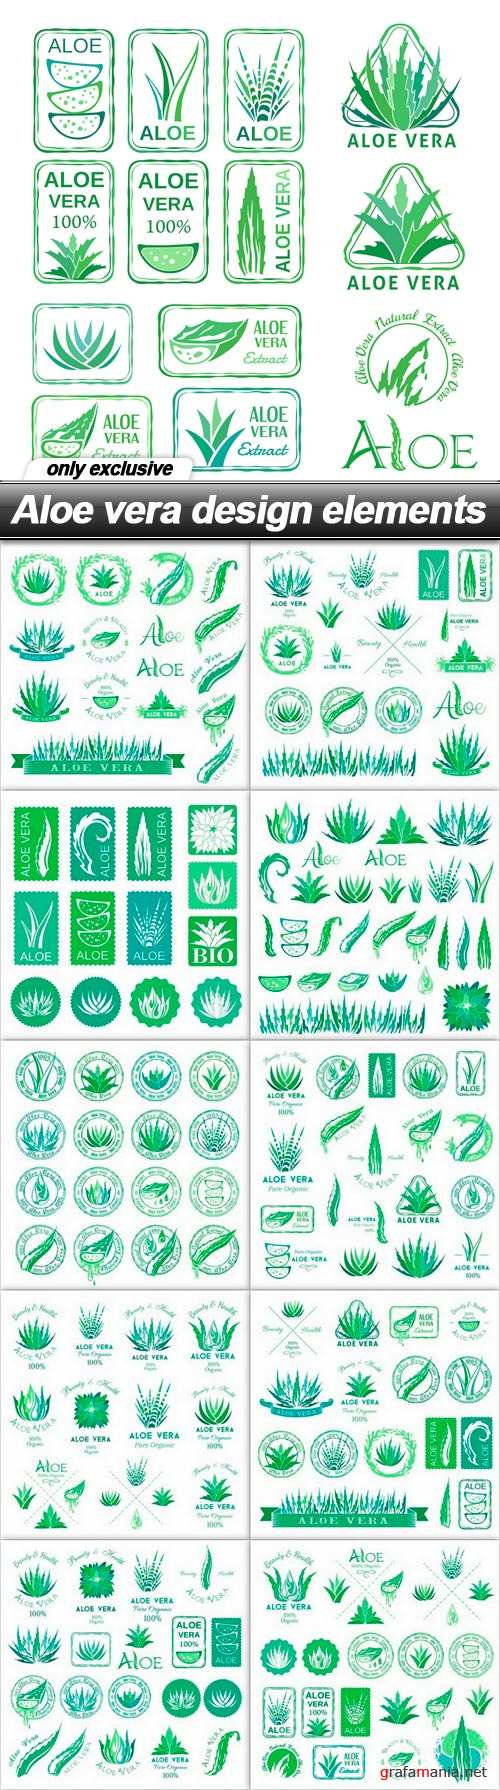 Aloe vera design elements - 11 EPS